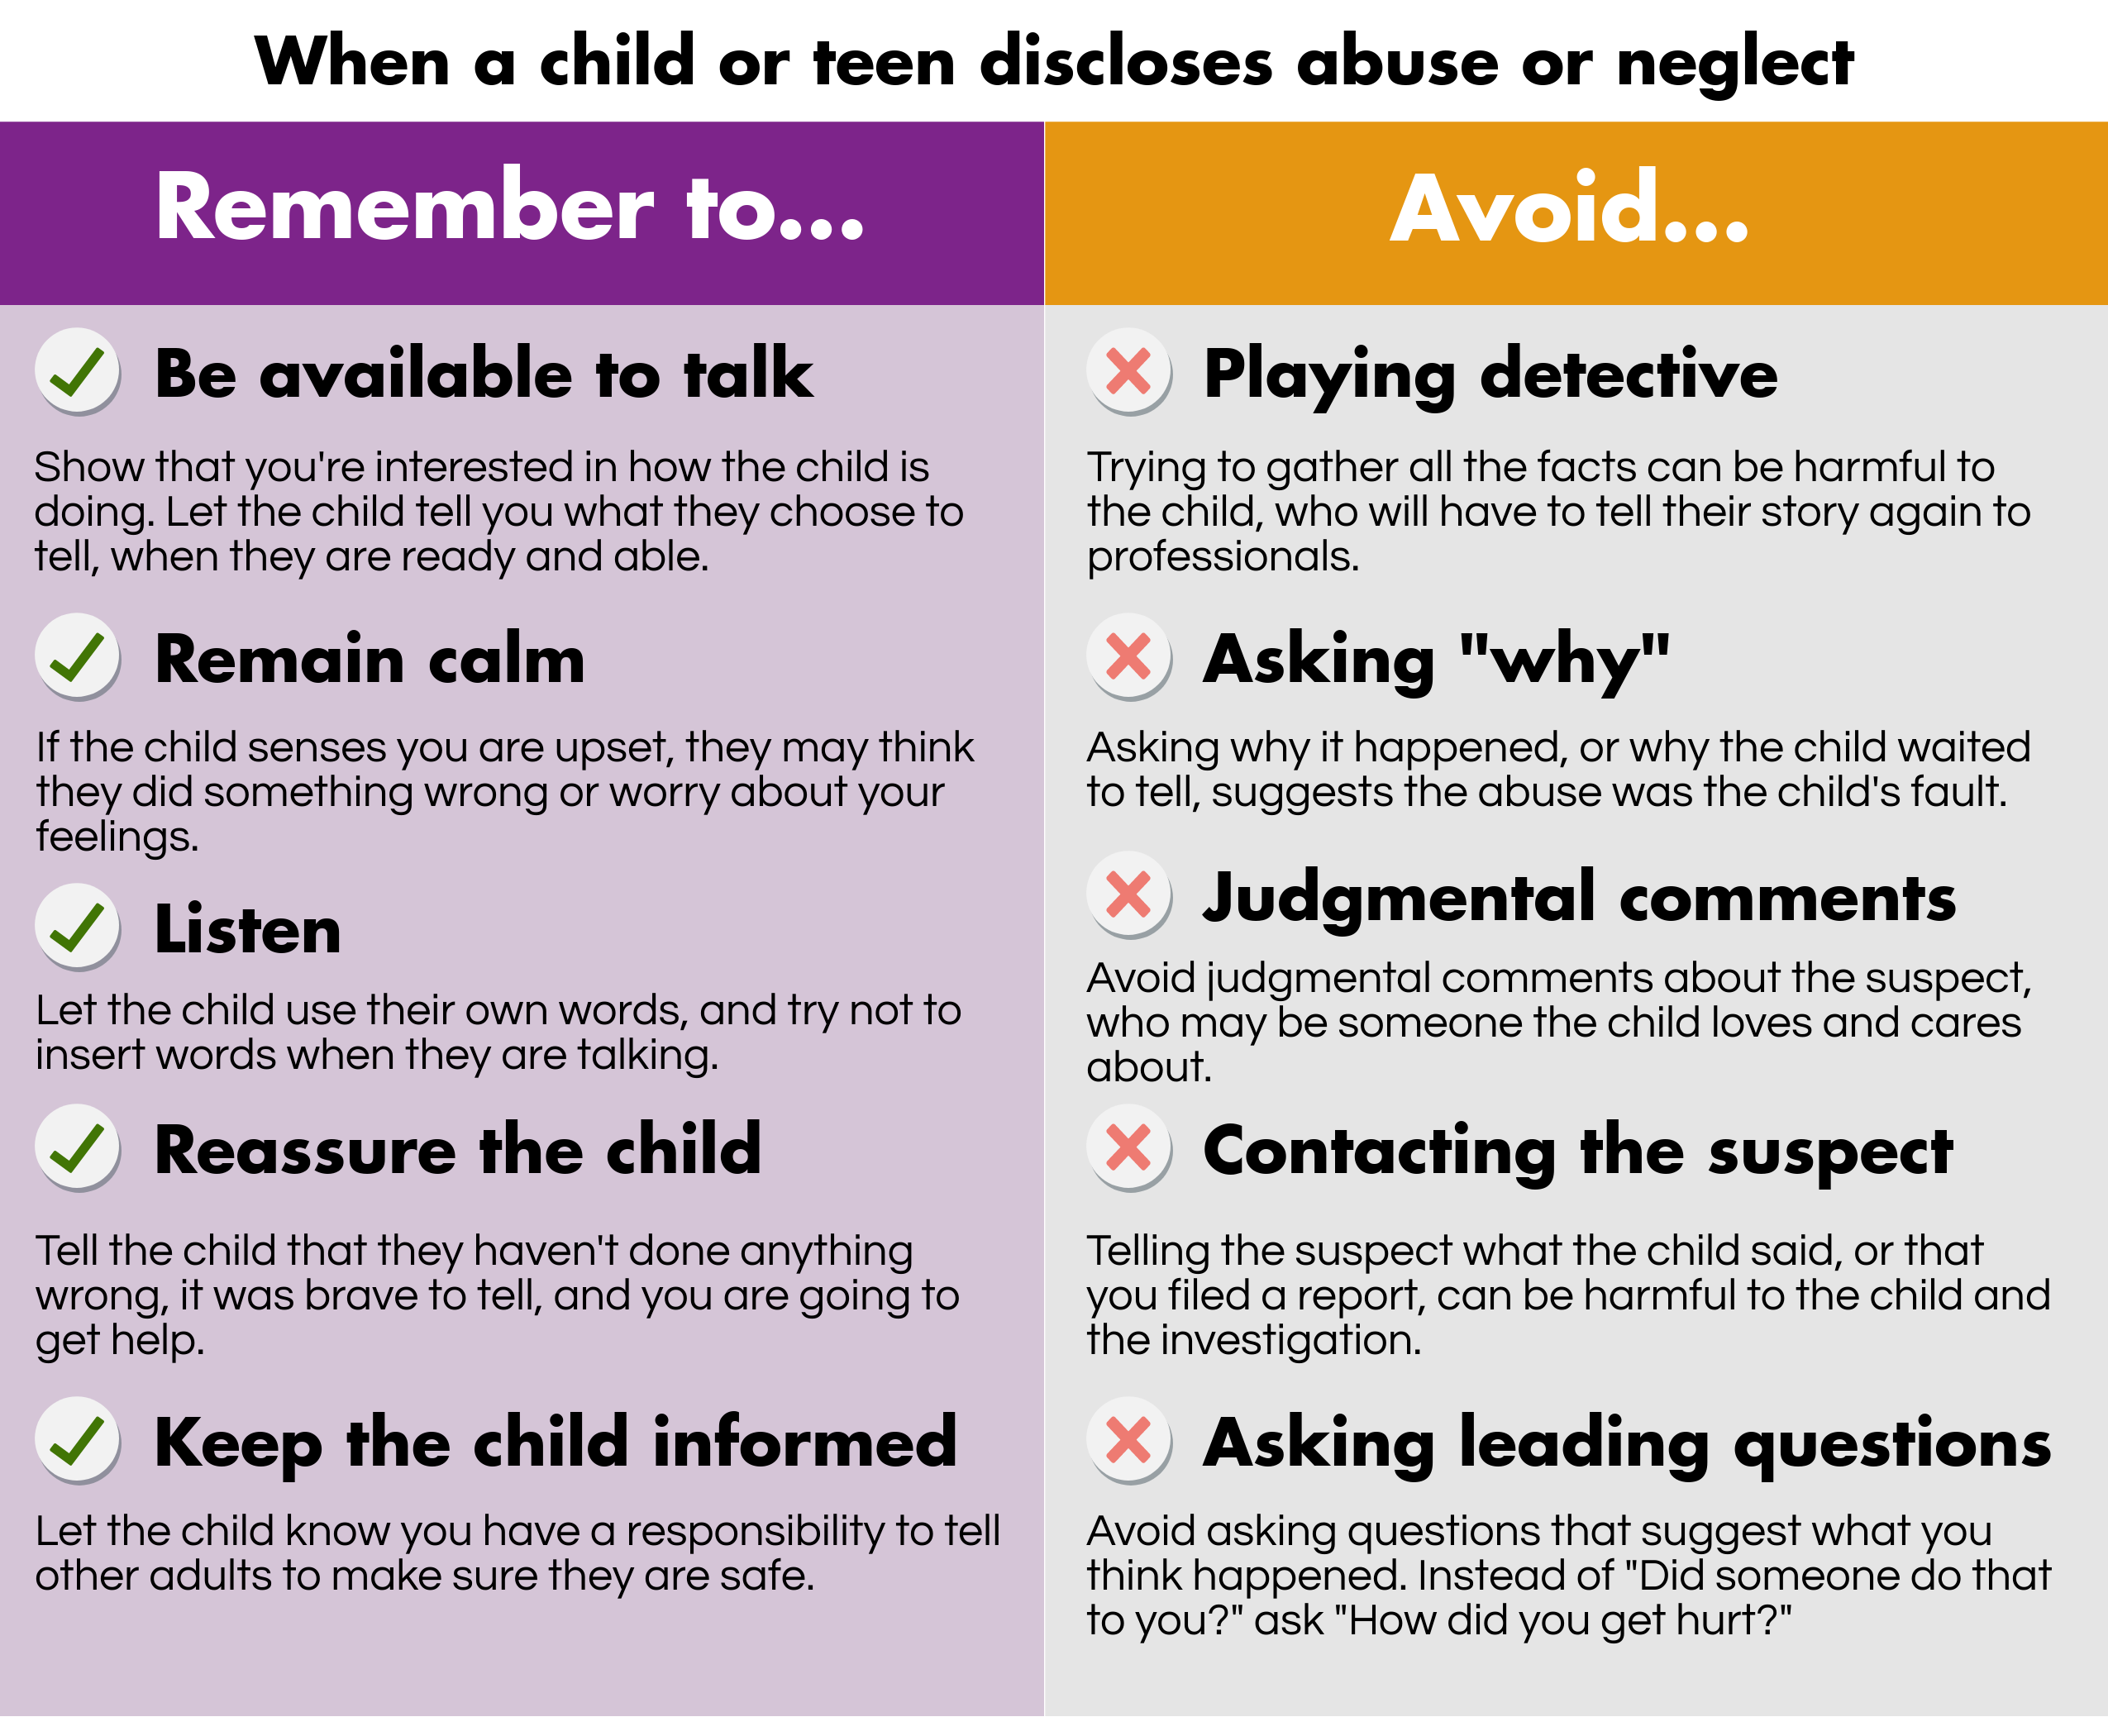 Know How to Respond | Support & Resources | Children's